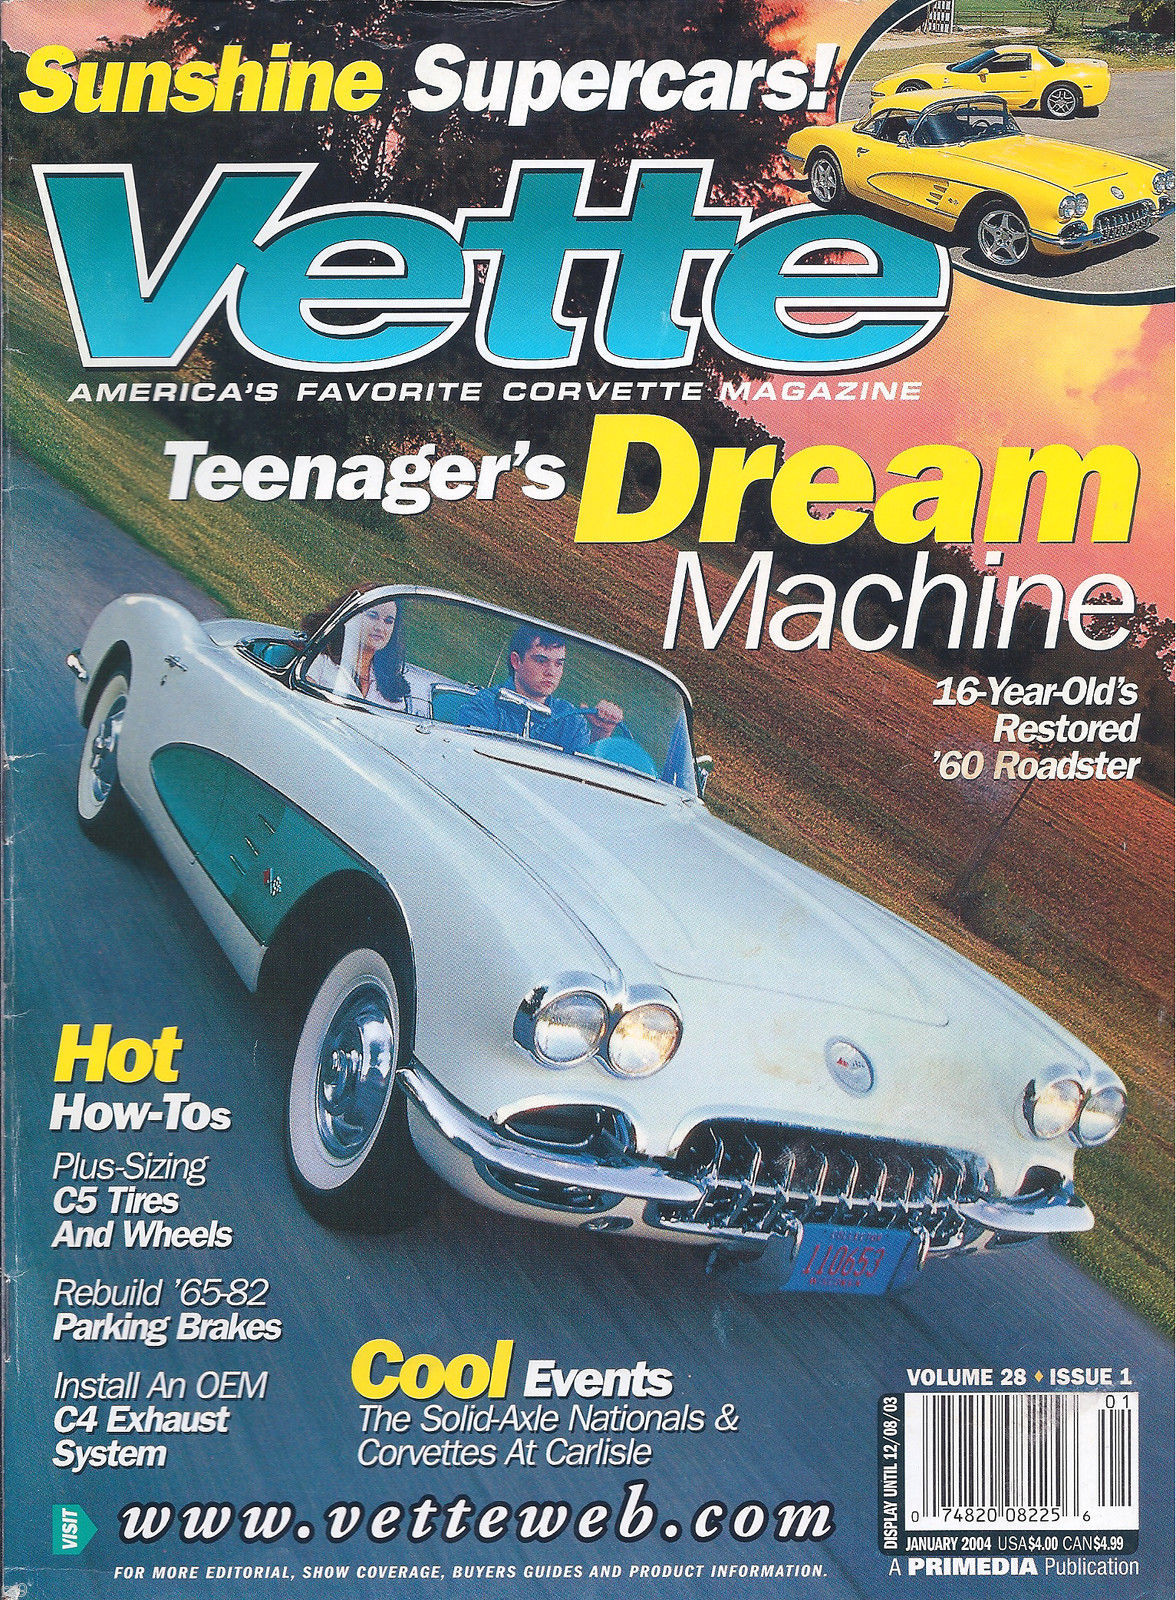 Primary image for Vette Magazine January 2004 Sunshine Supercars! '60 Roadster